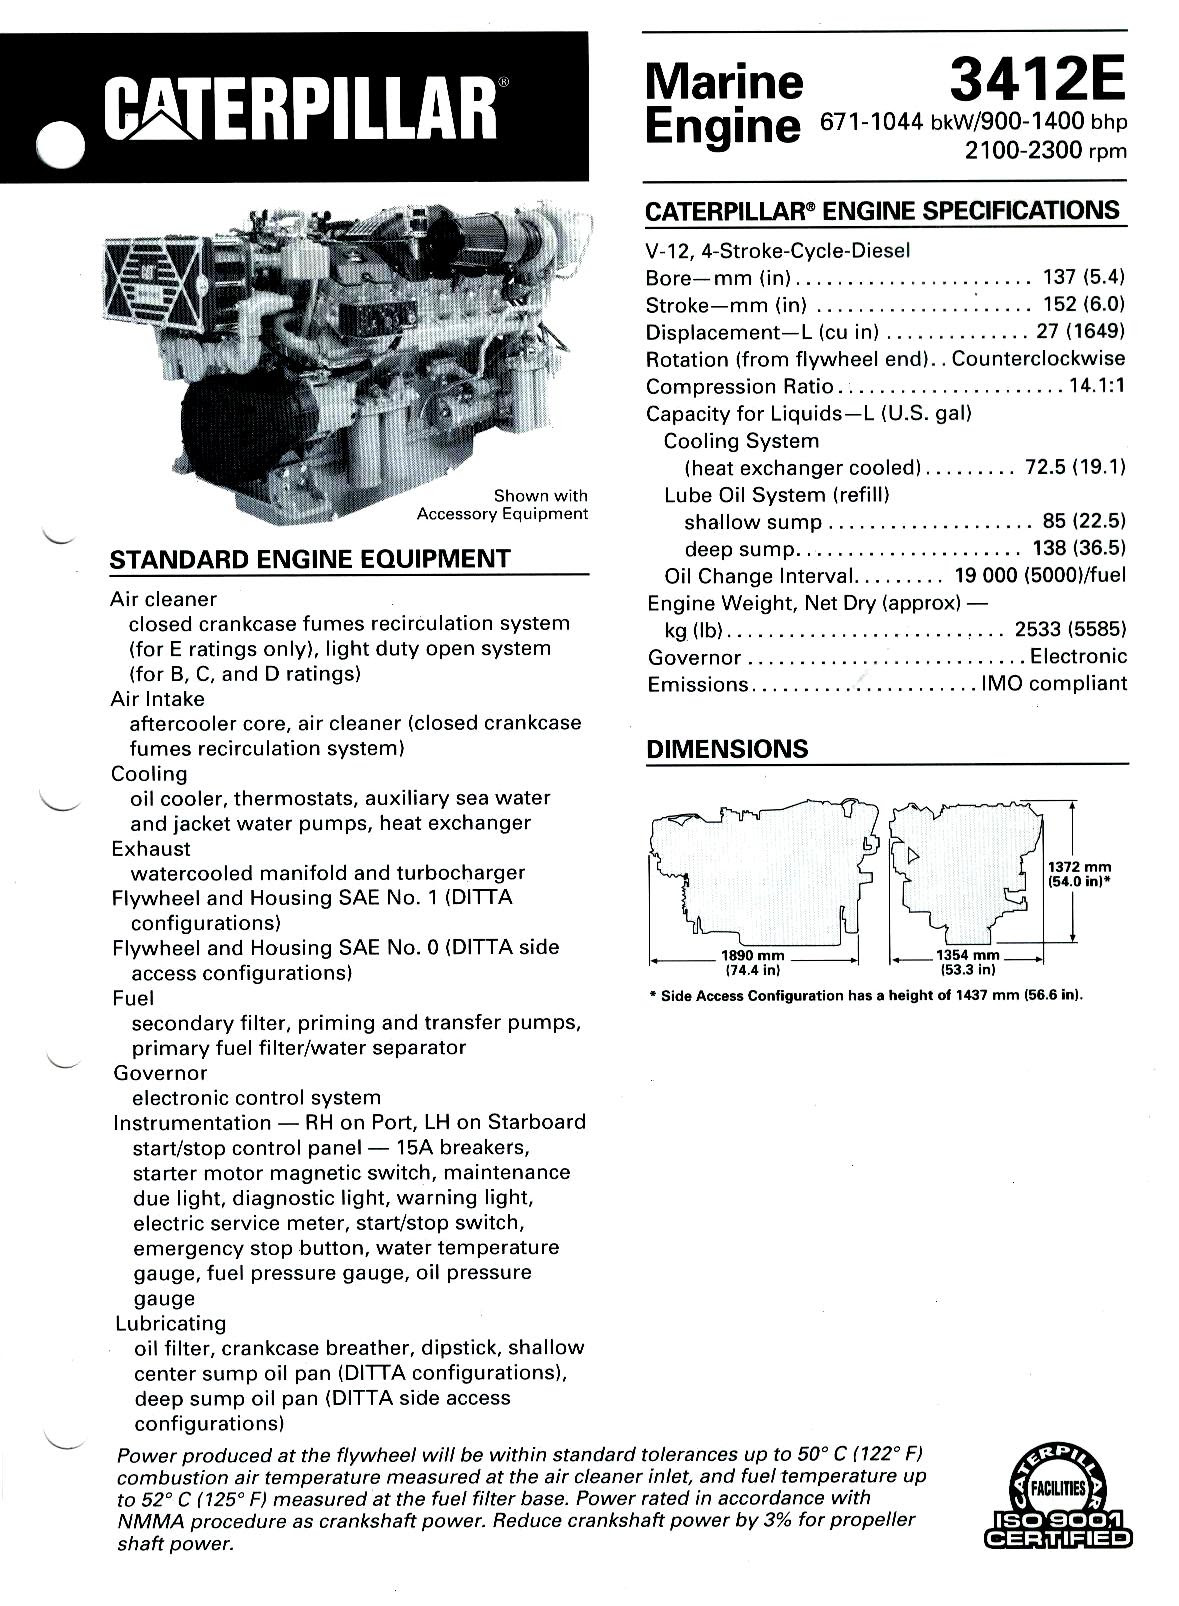 Cat 3412 Marine Engine Oil Capacity